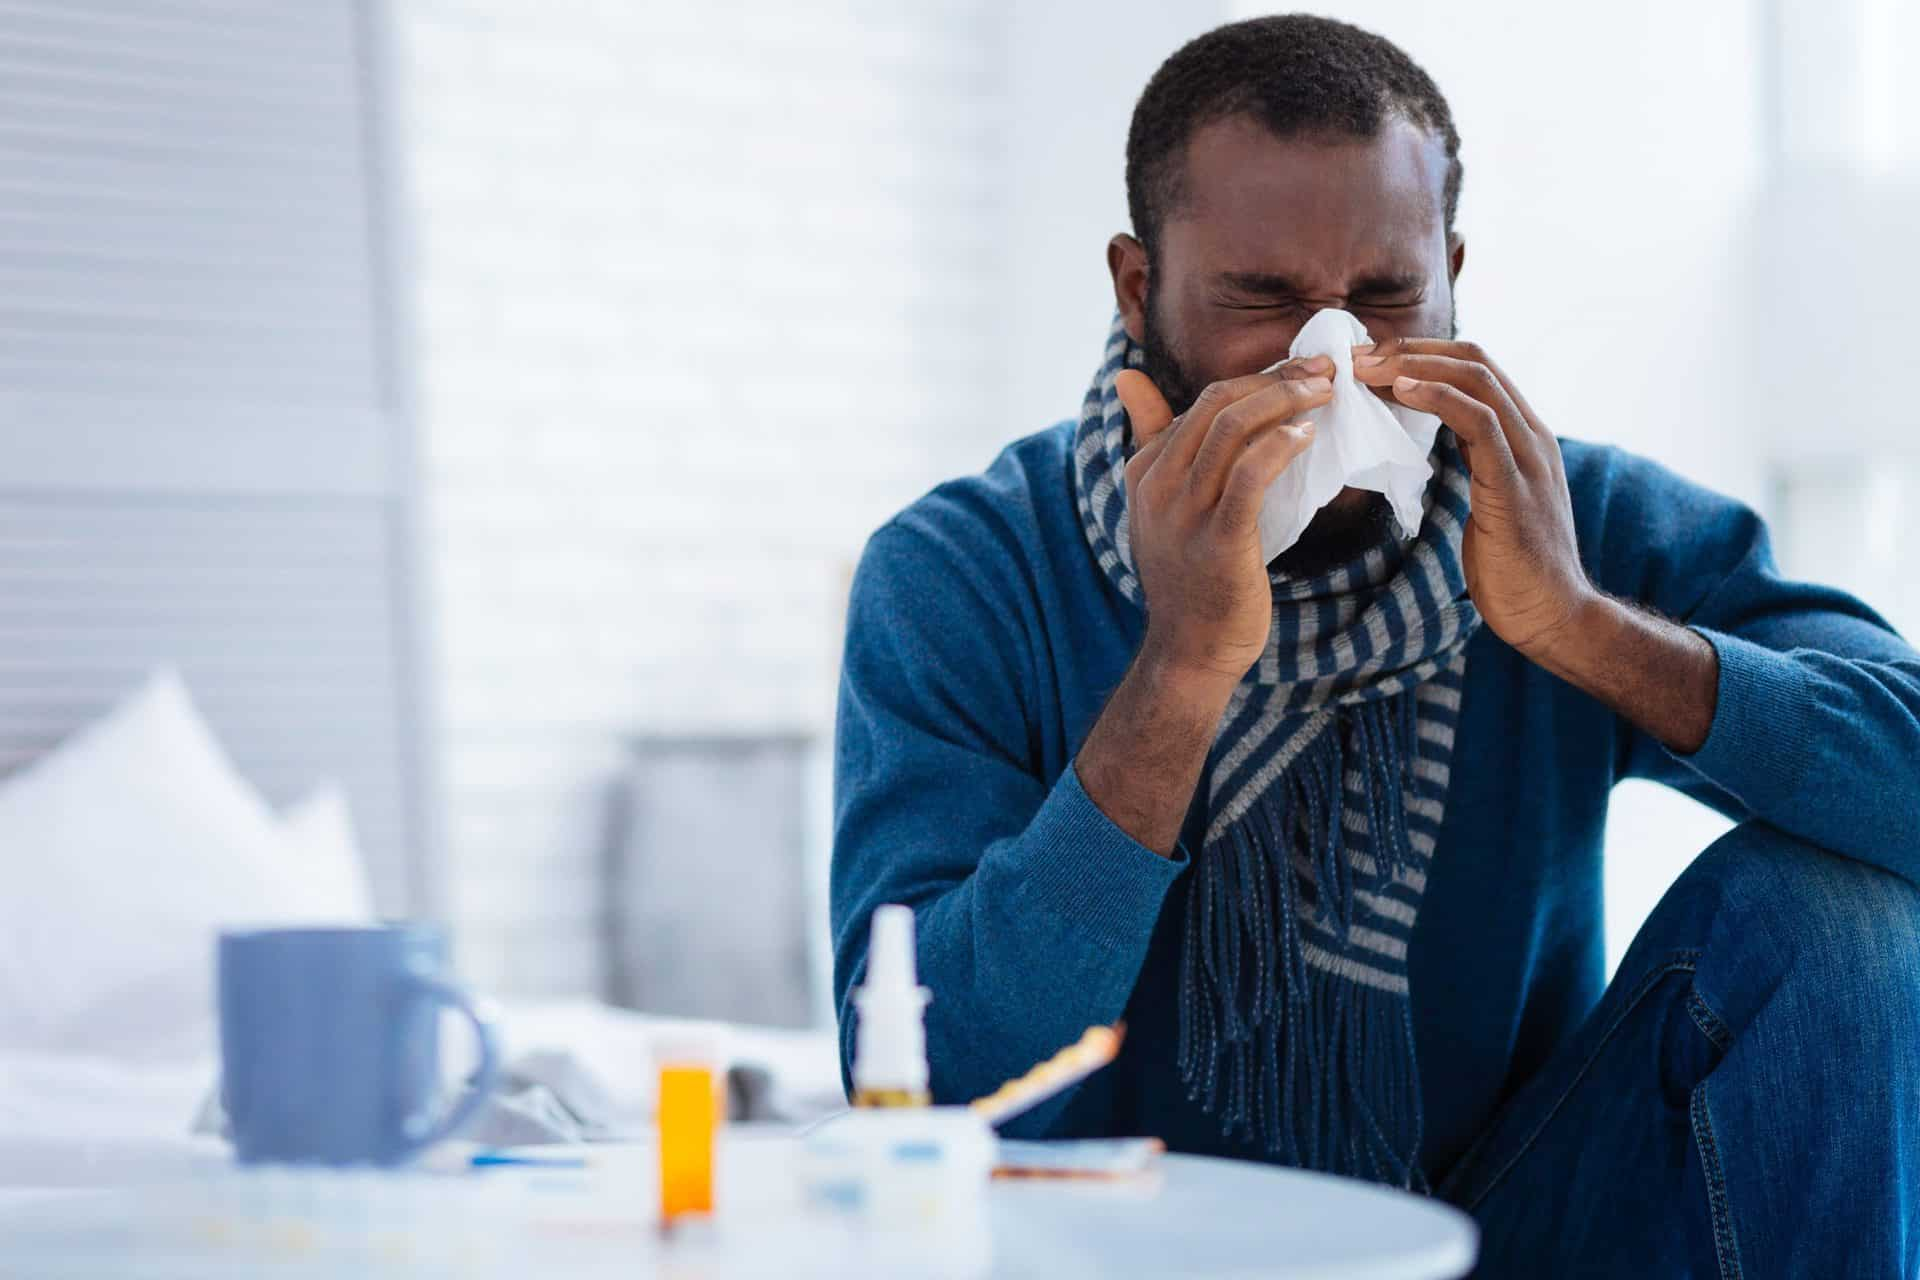 Man-with-cold-or-flu-blowing-nose